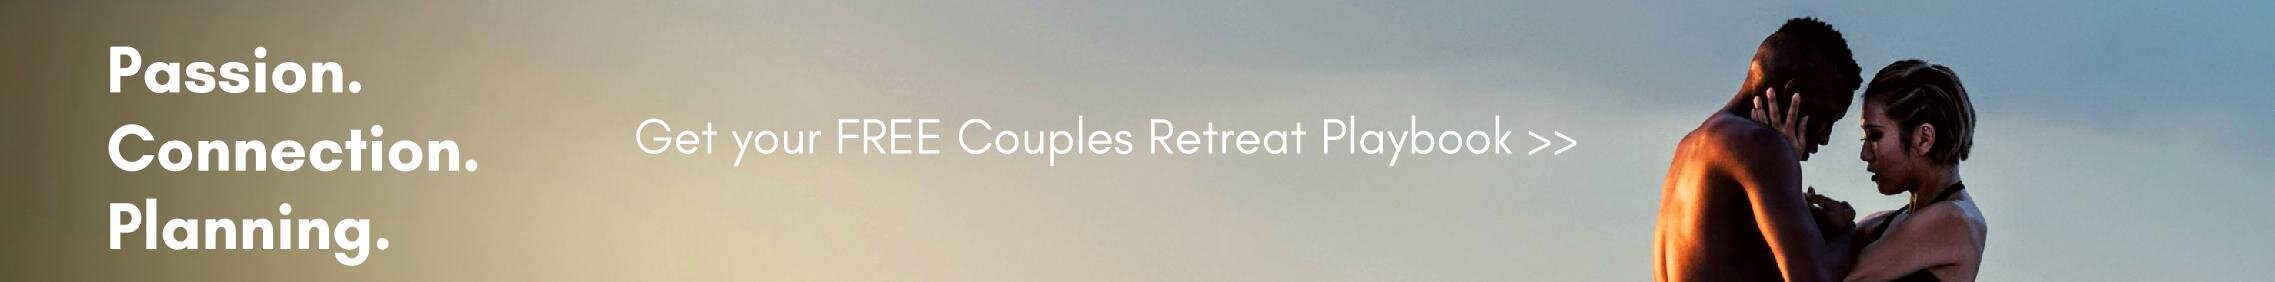 Couples retreat playbook, family academy